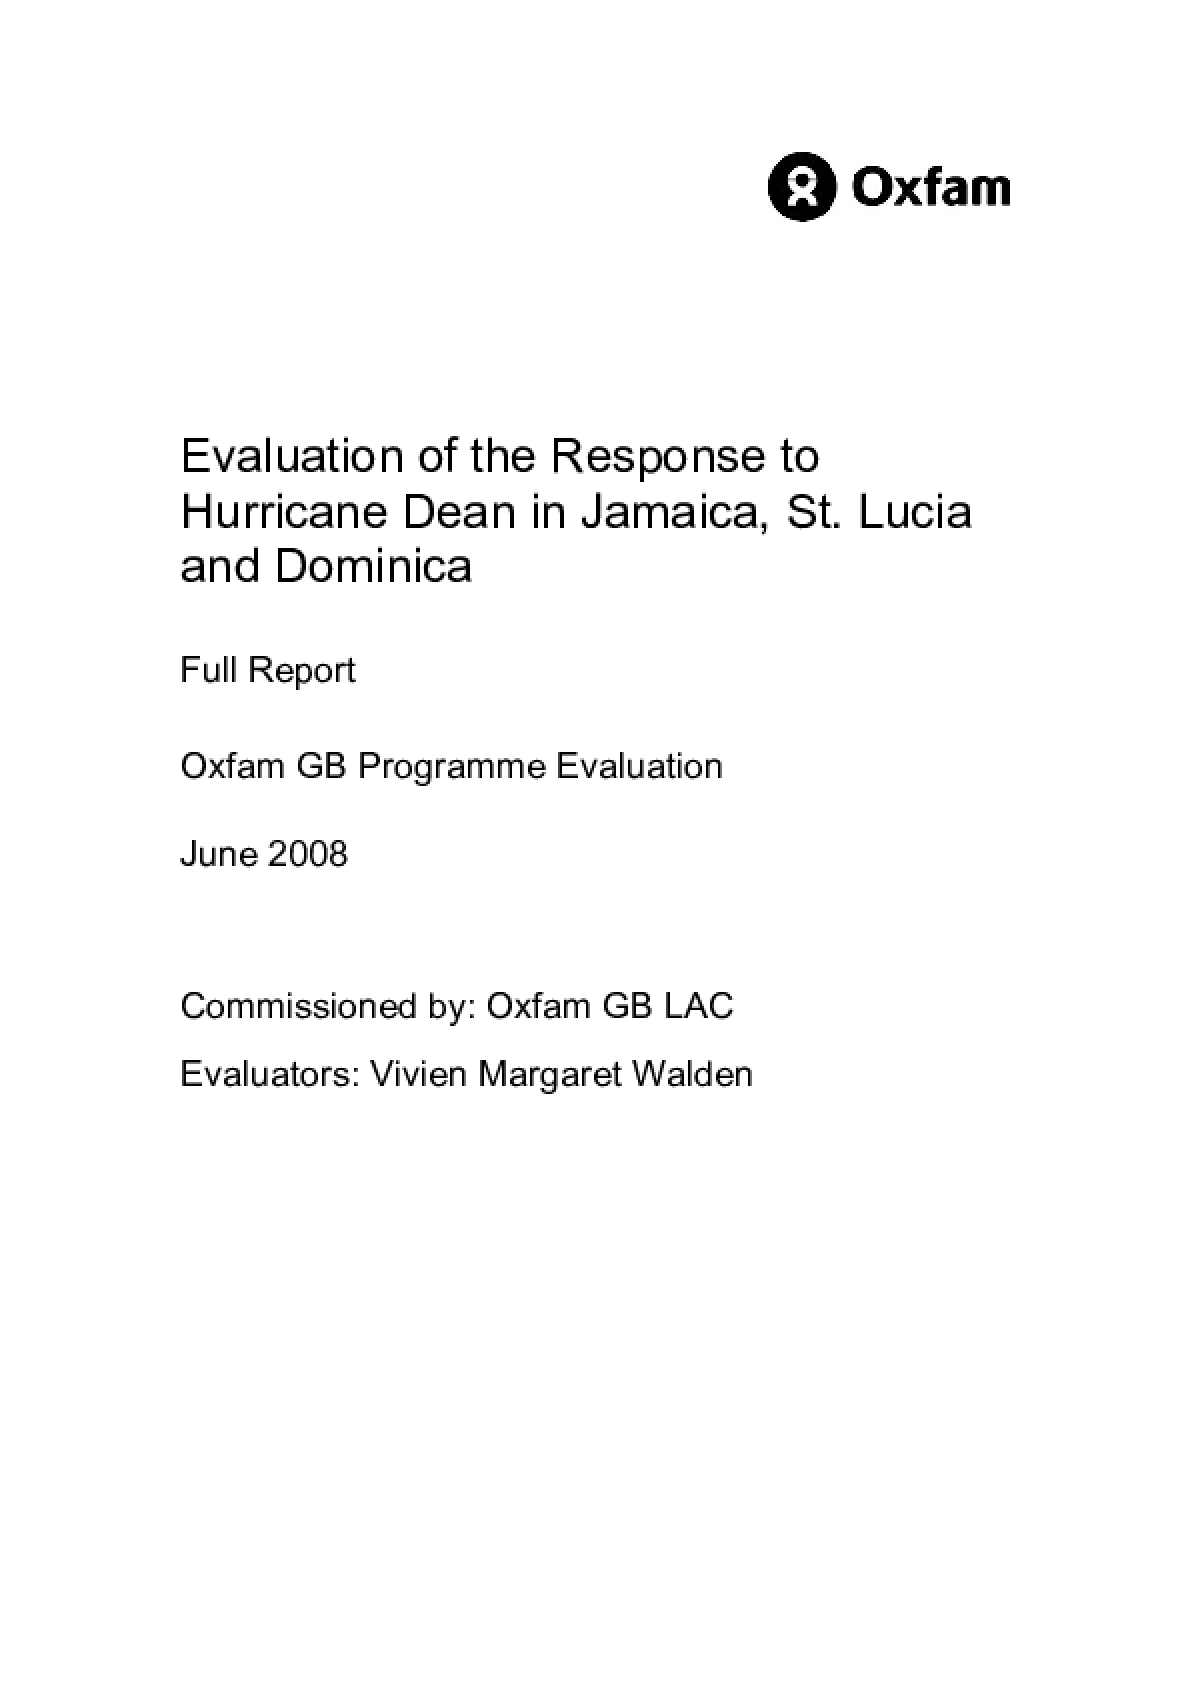 Evaluation of the Response to Hurricane Dean in Jamaica, St. Lucia and Dominica